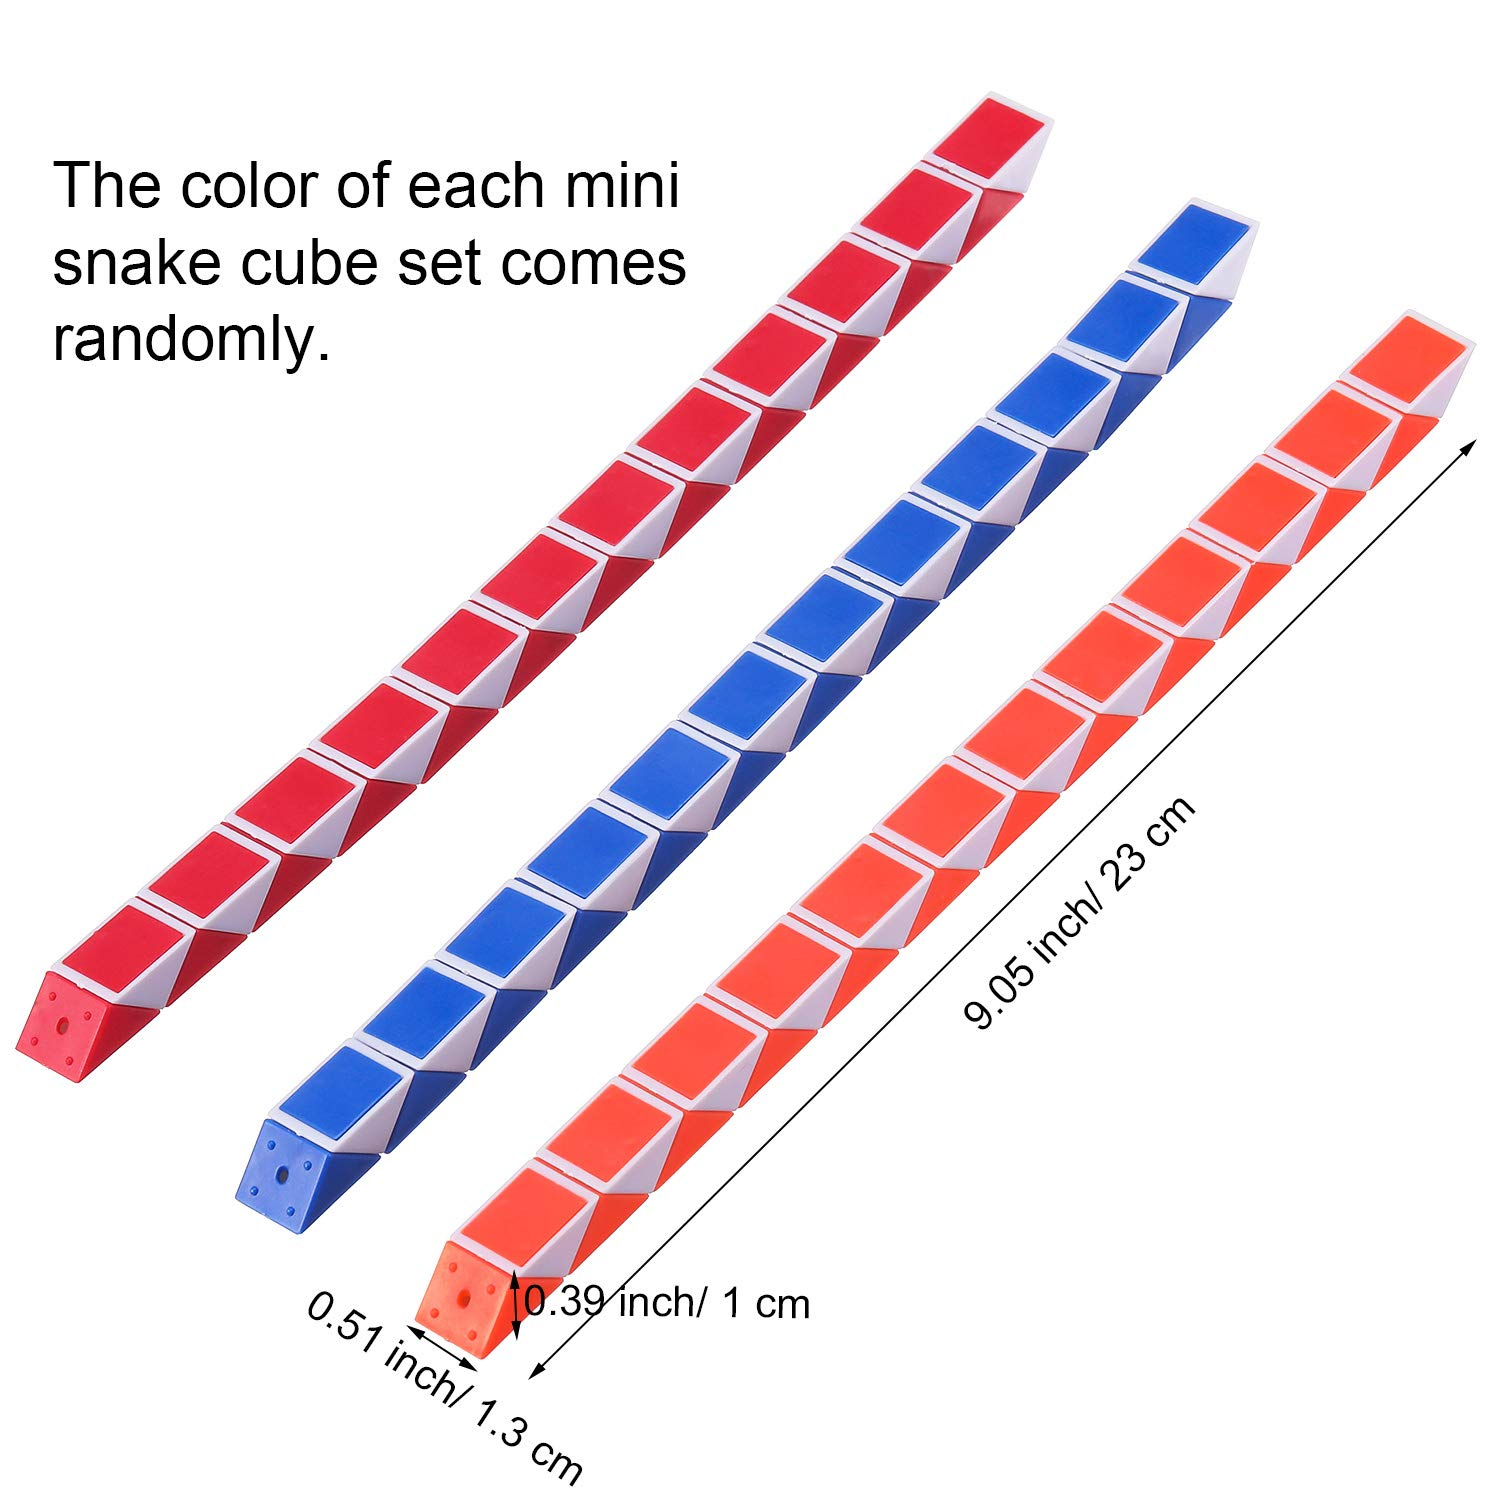 Boao 18 Pack 24 Blocks Magic Snake Cubes Twist Puzzle Toys Mini Snakes Speed Cubes for Kids Party Bag Fillers Party Supplies Random Colors